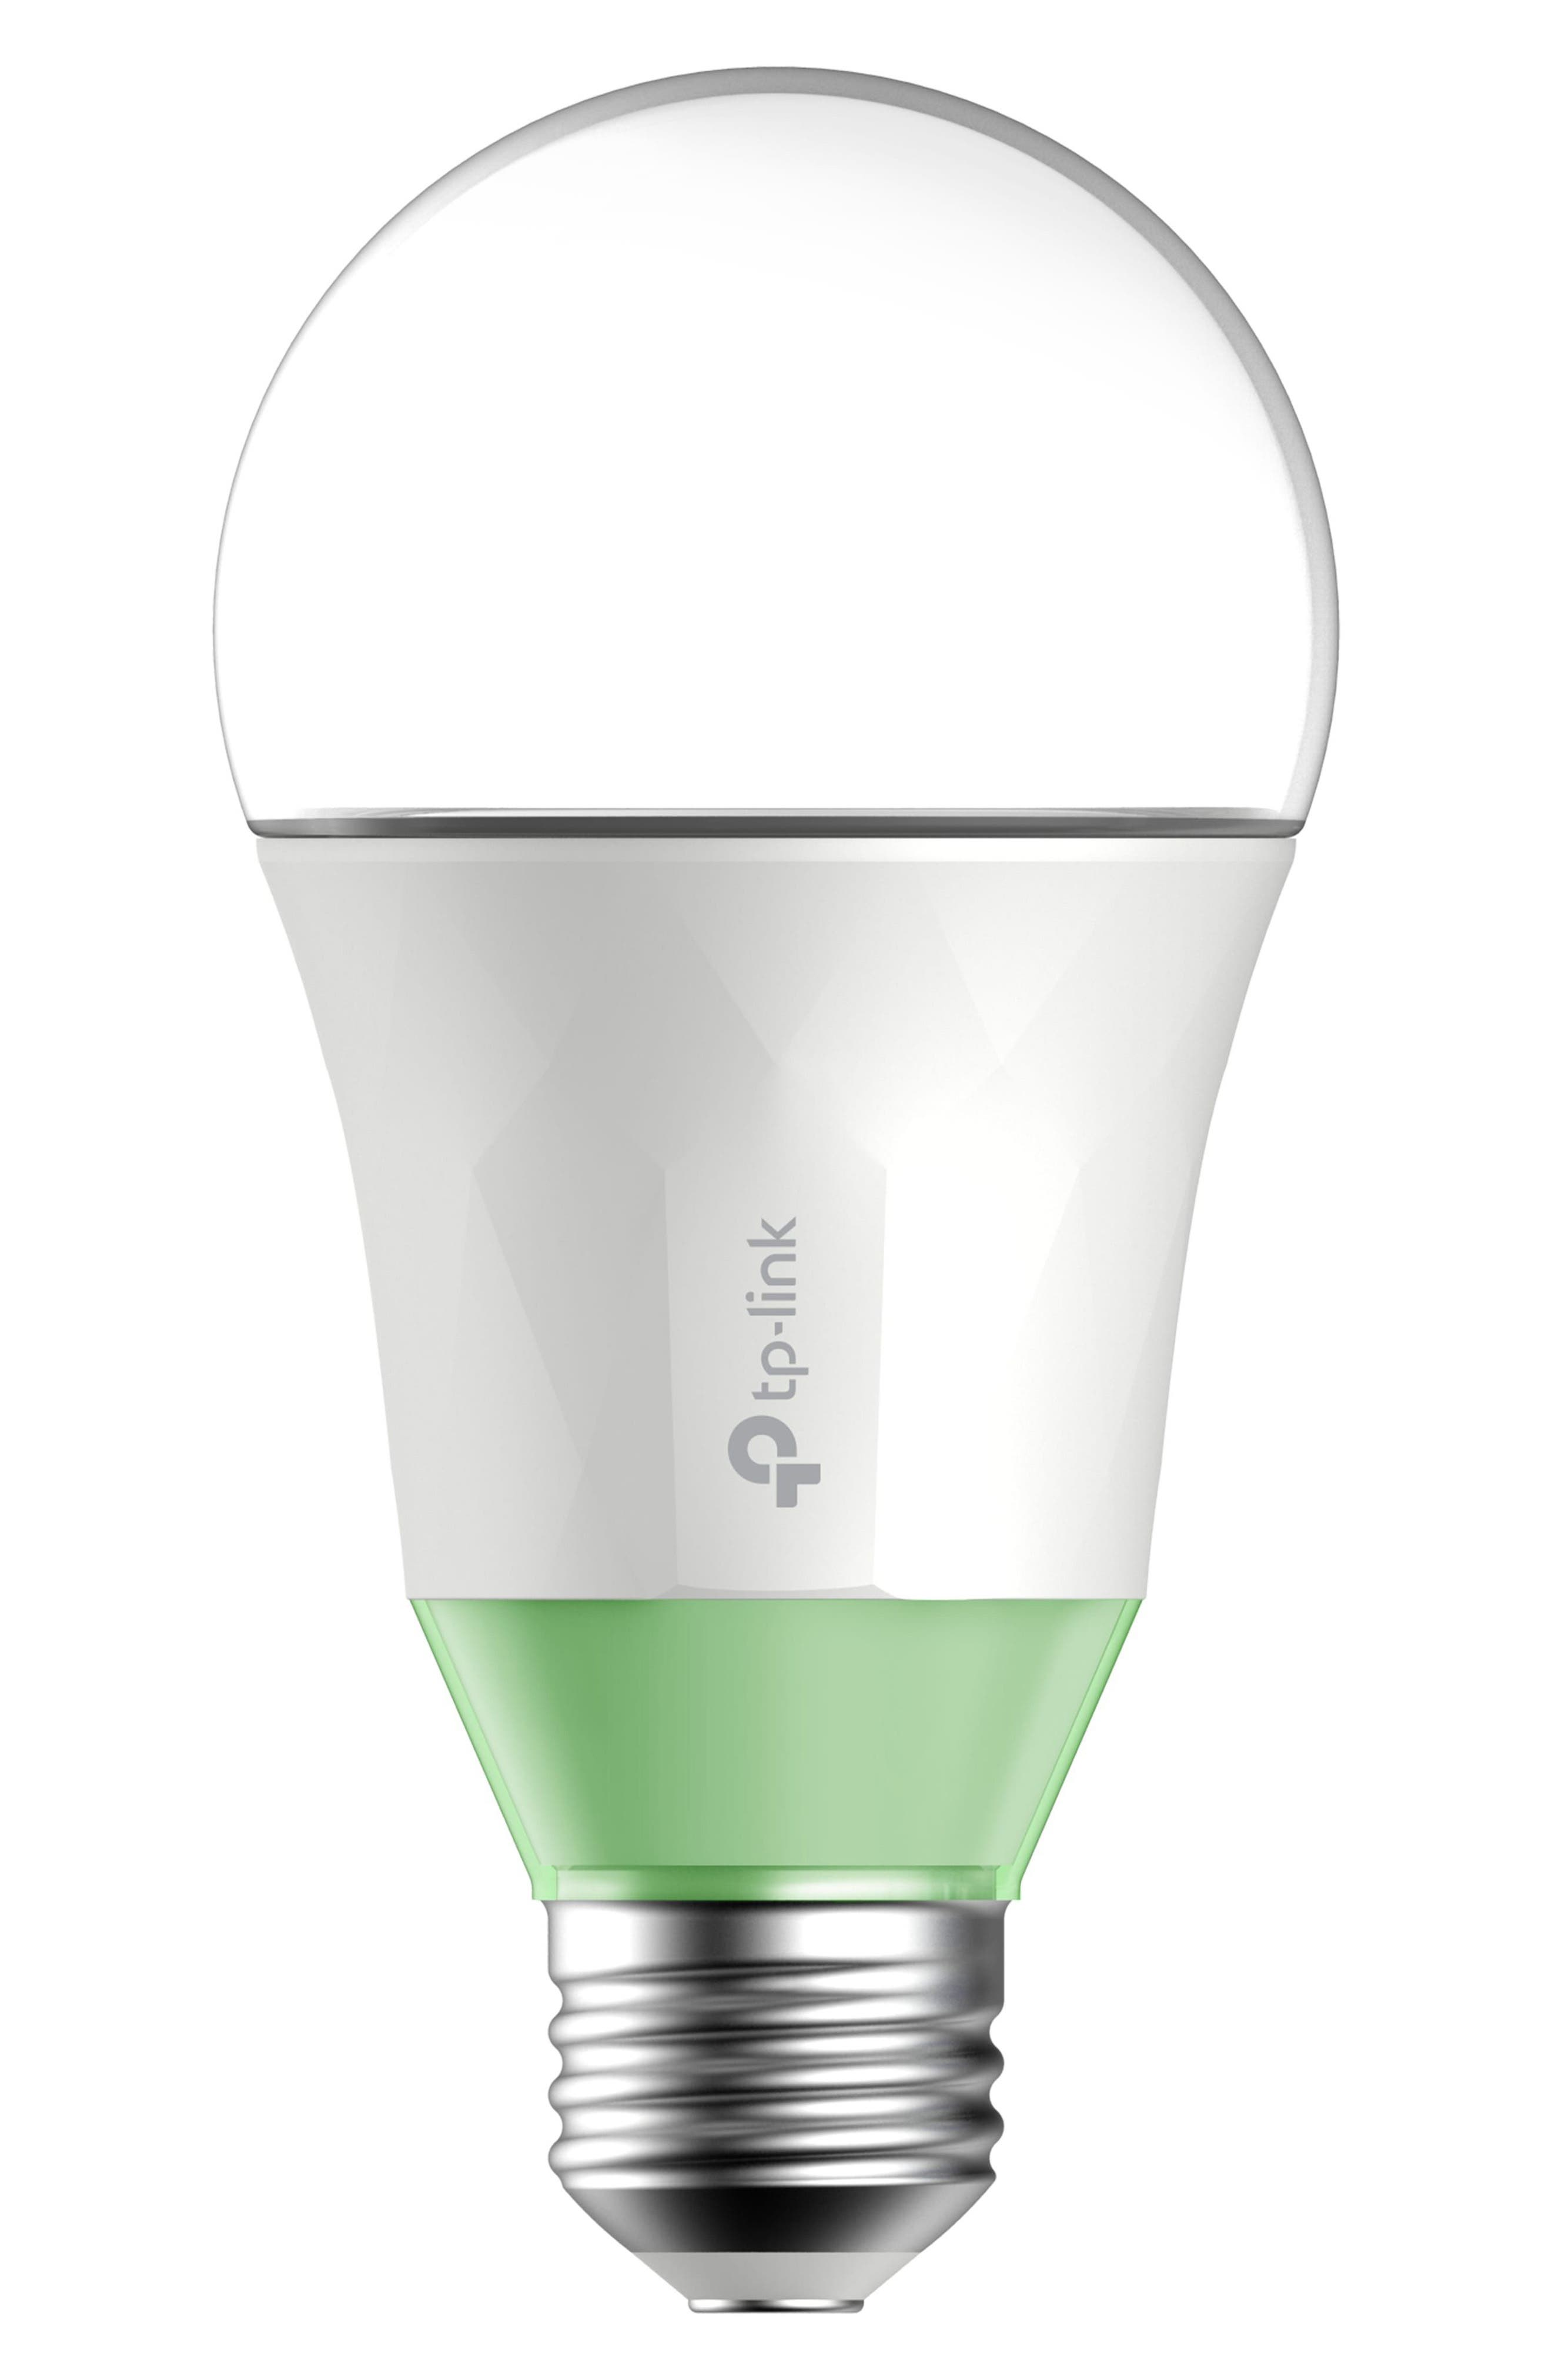 Smart Wi-Fi Dimmable LED Light Bulb,                         Main,                         color, White